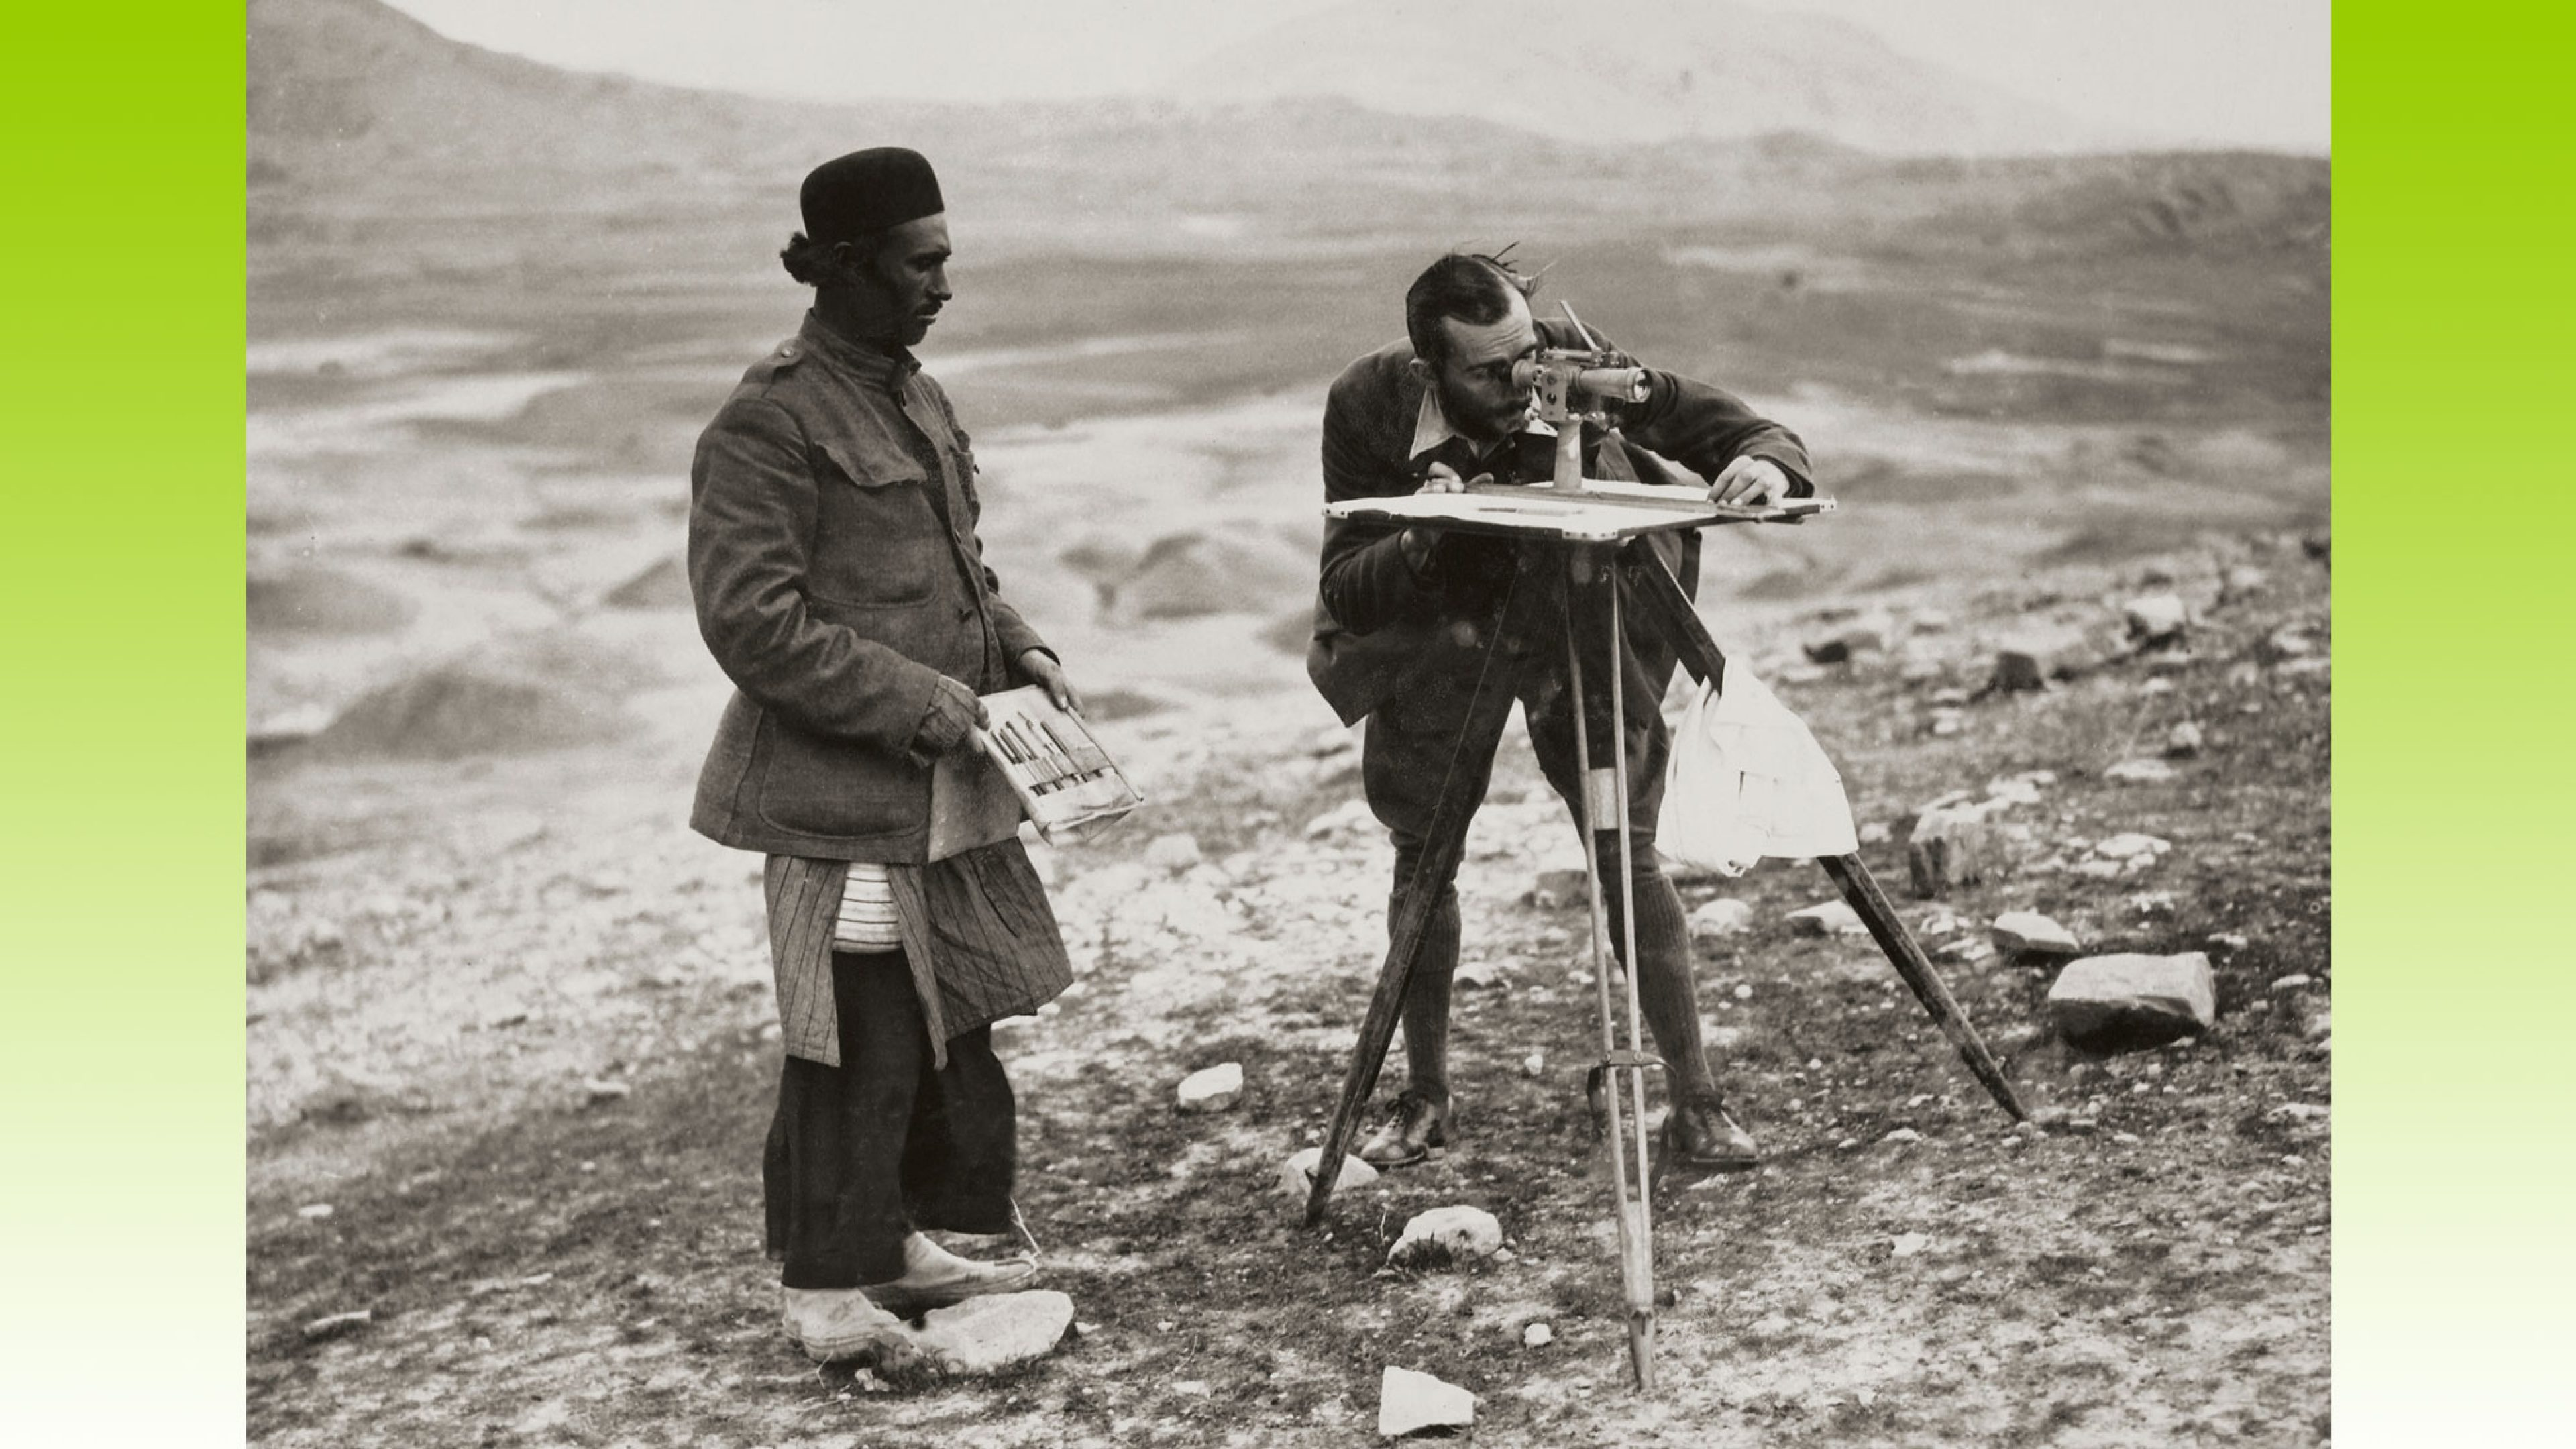 A BP geologist using instruments to conduct a survey in Persia, 1926. A local guide stands by his side